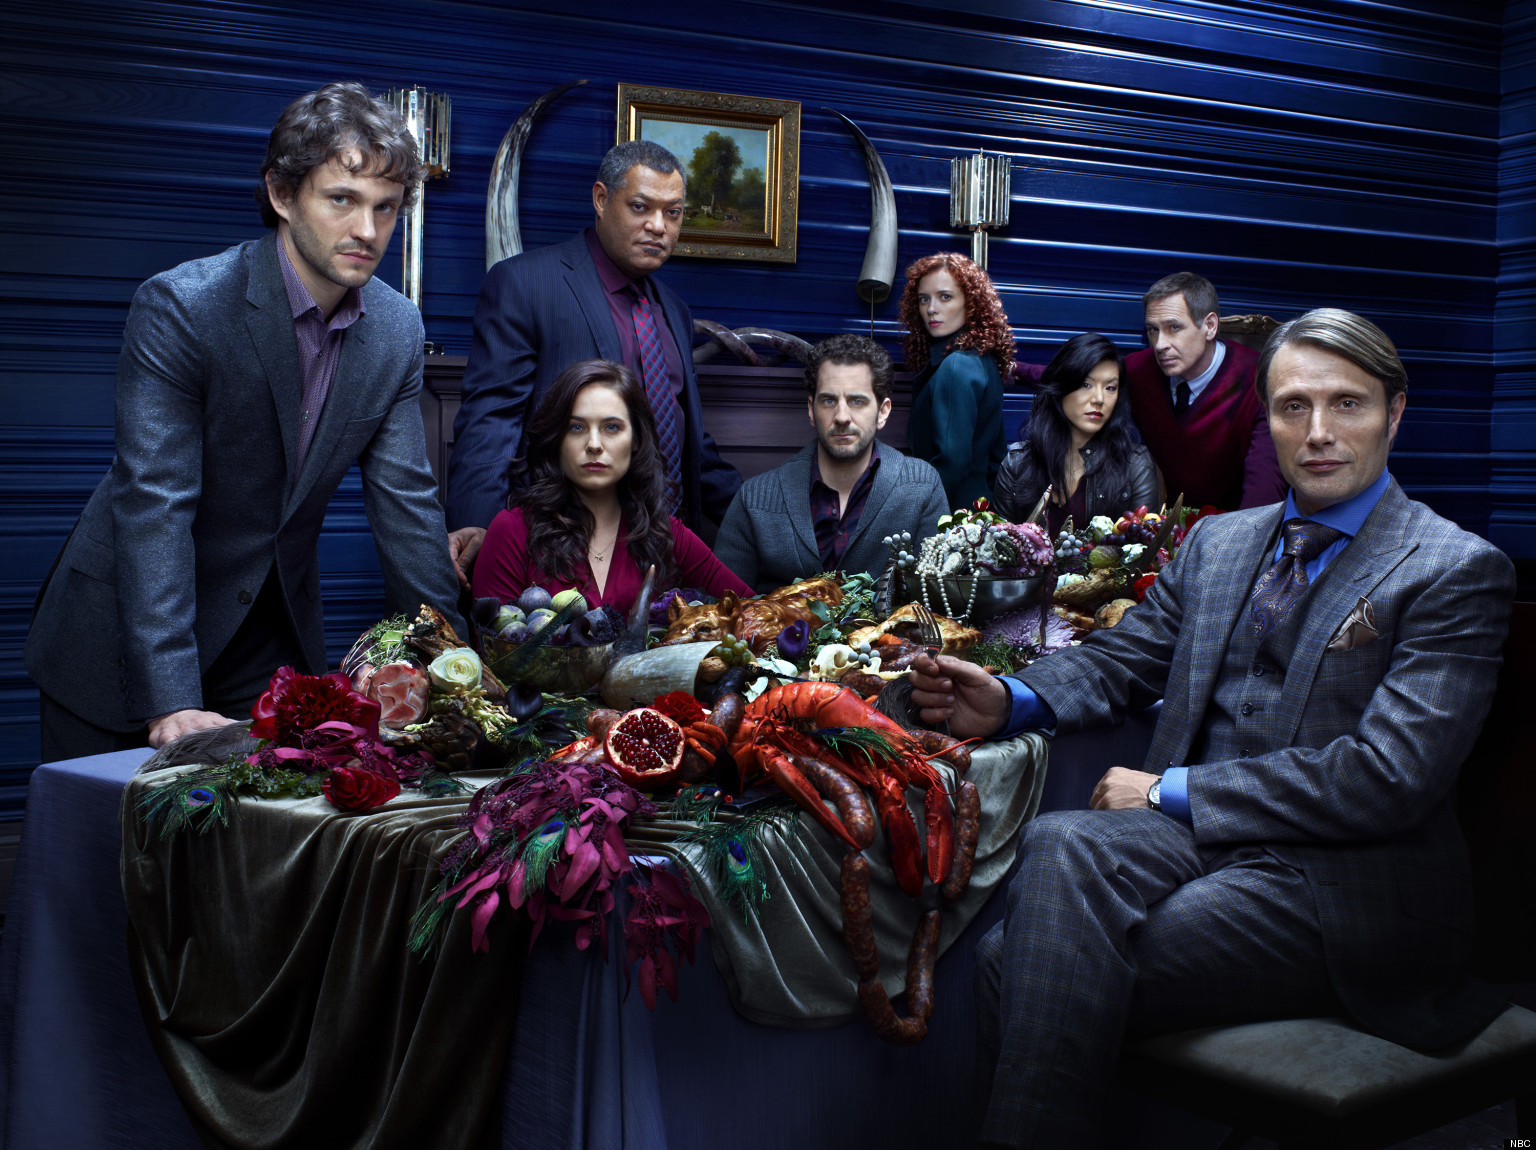 39 hannibal 39 cast hugh dancy laurence fishburne and more in exclusive gallery images photos - Hannibal tv series actors ...